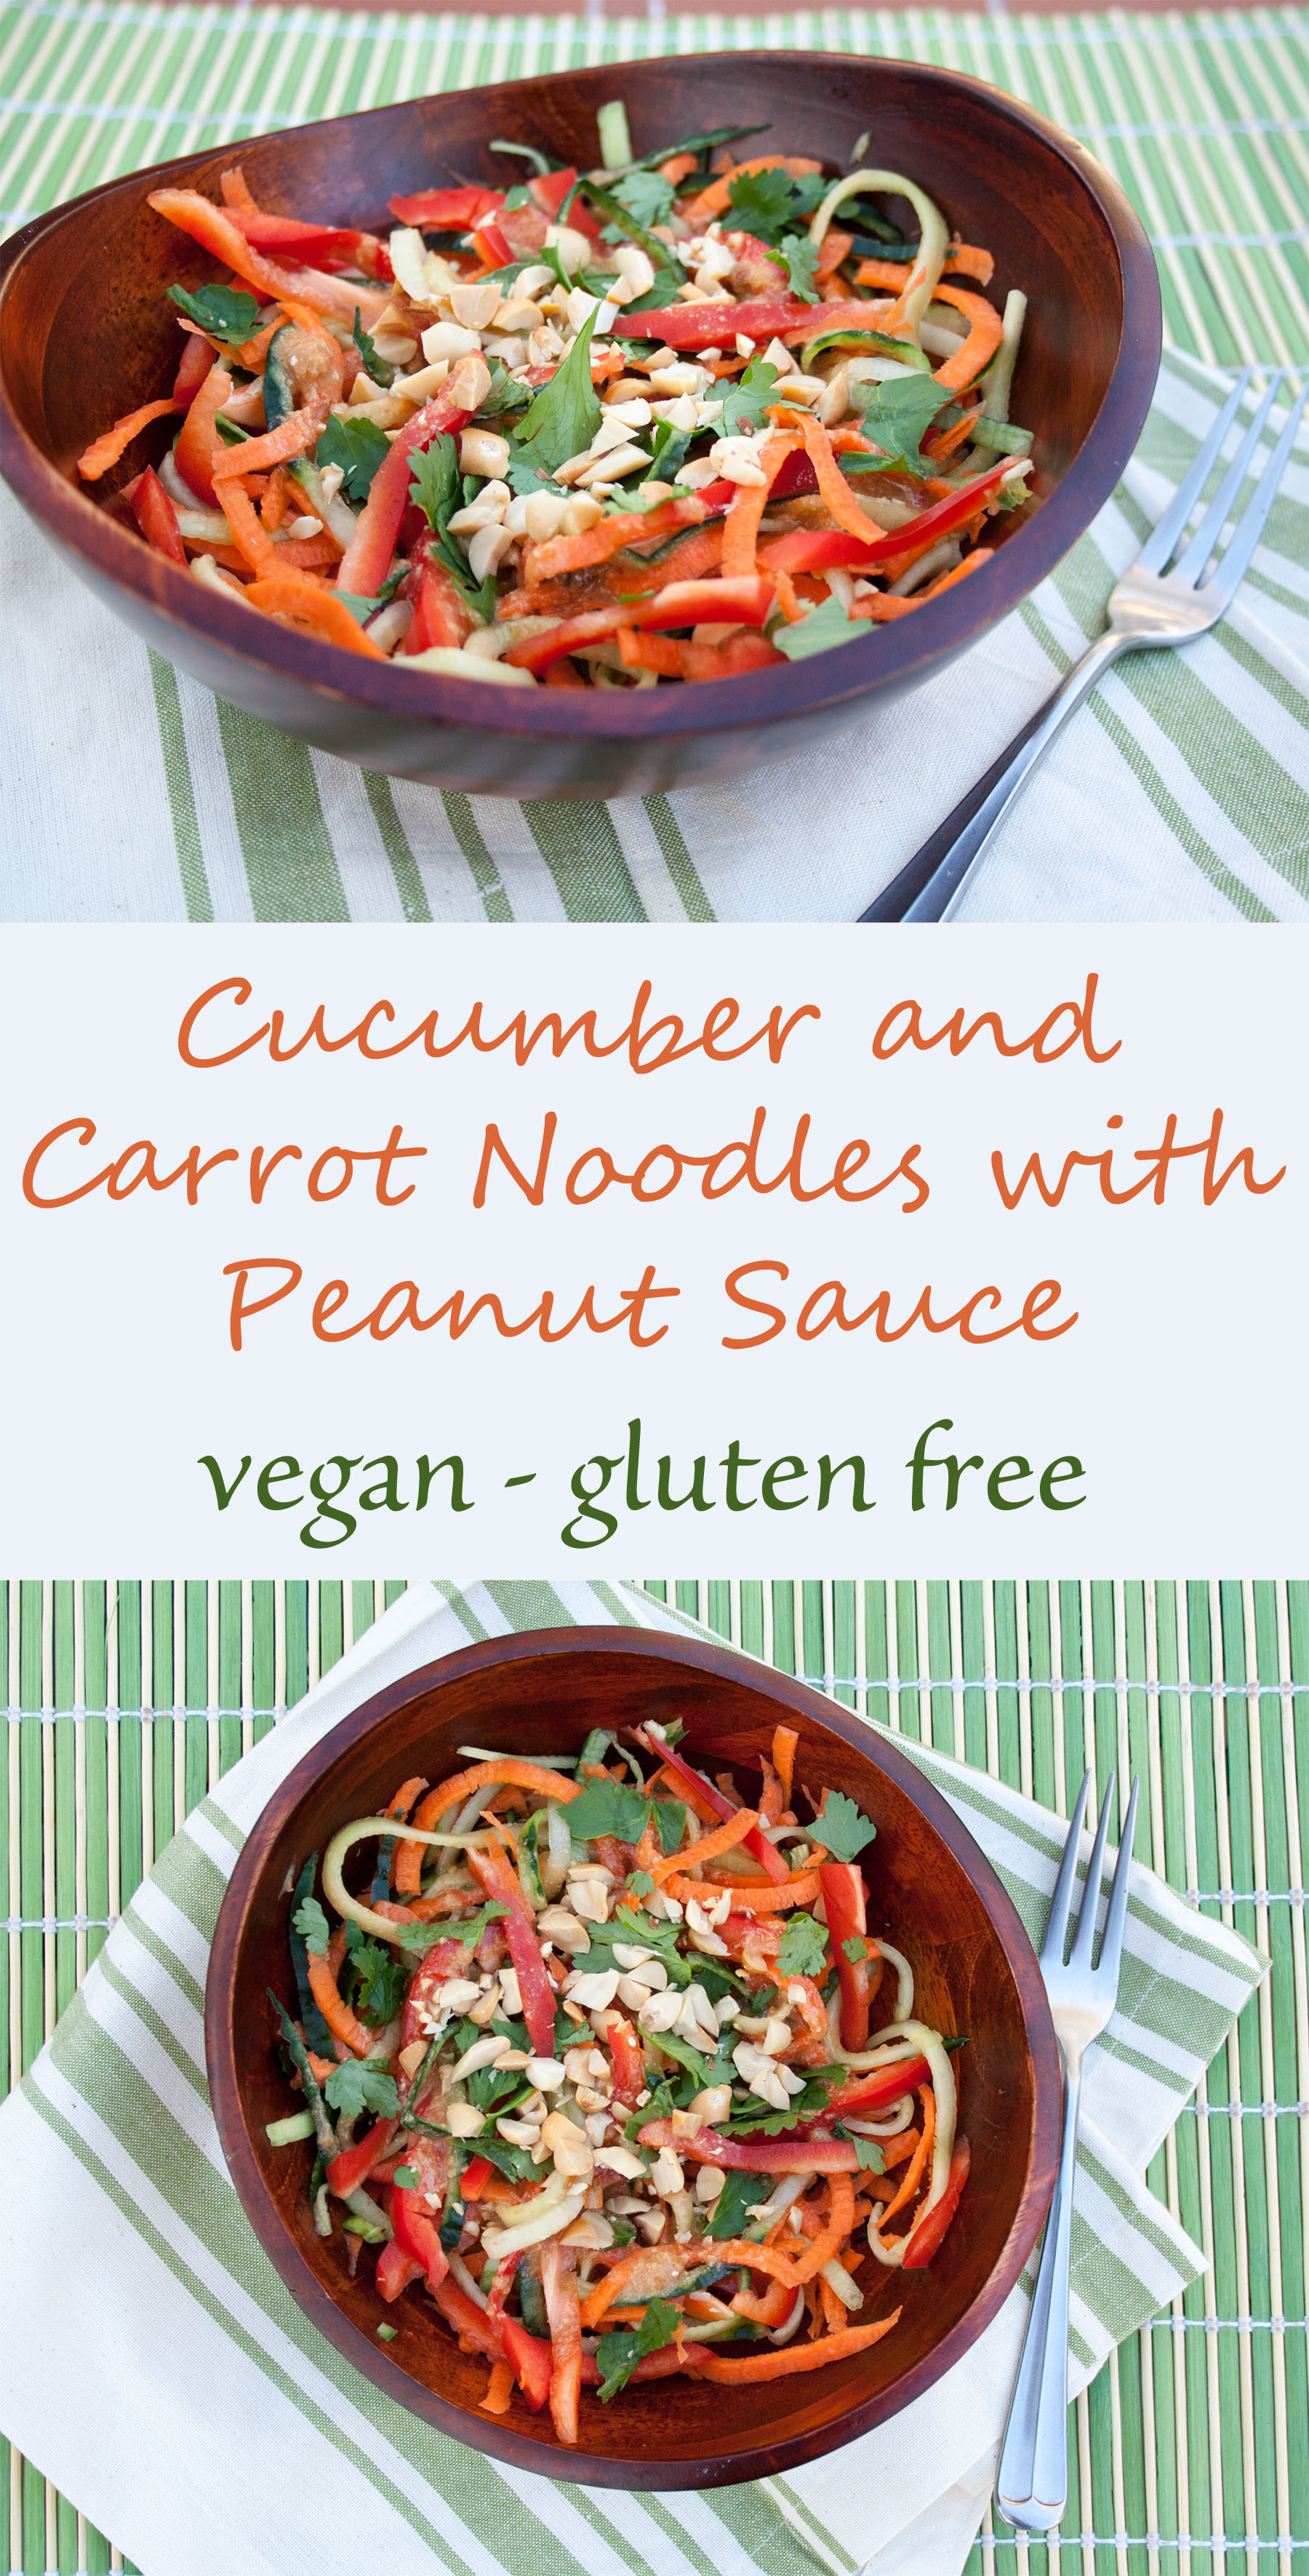 Cucumber and Carrot Noodles with Peanut Sauce collage photo with text.